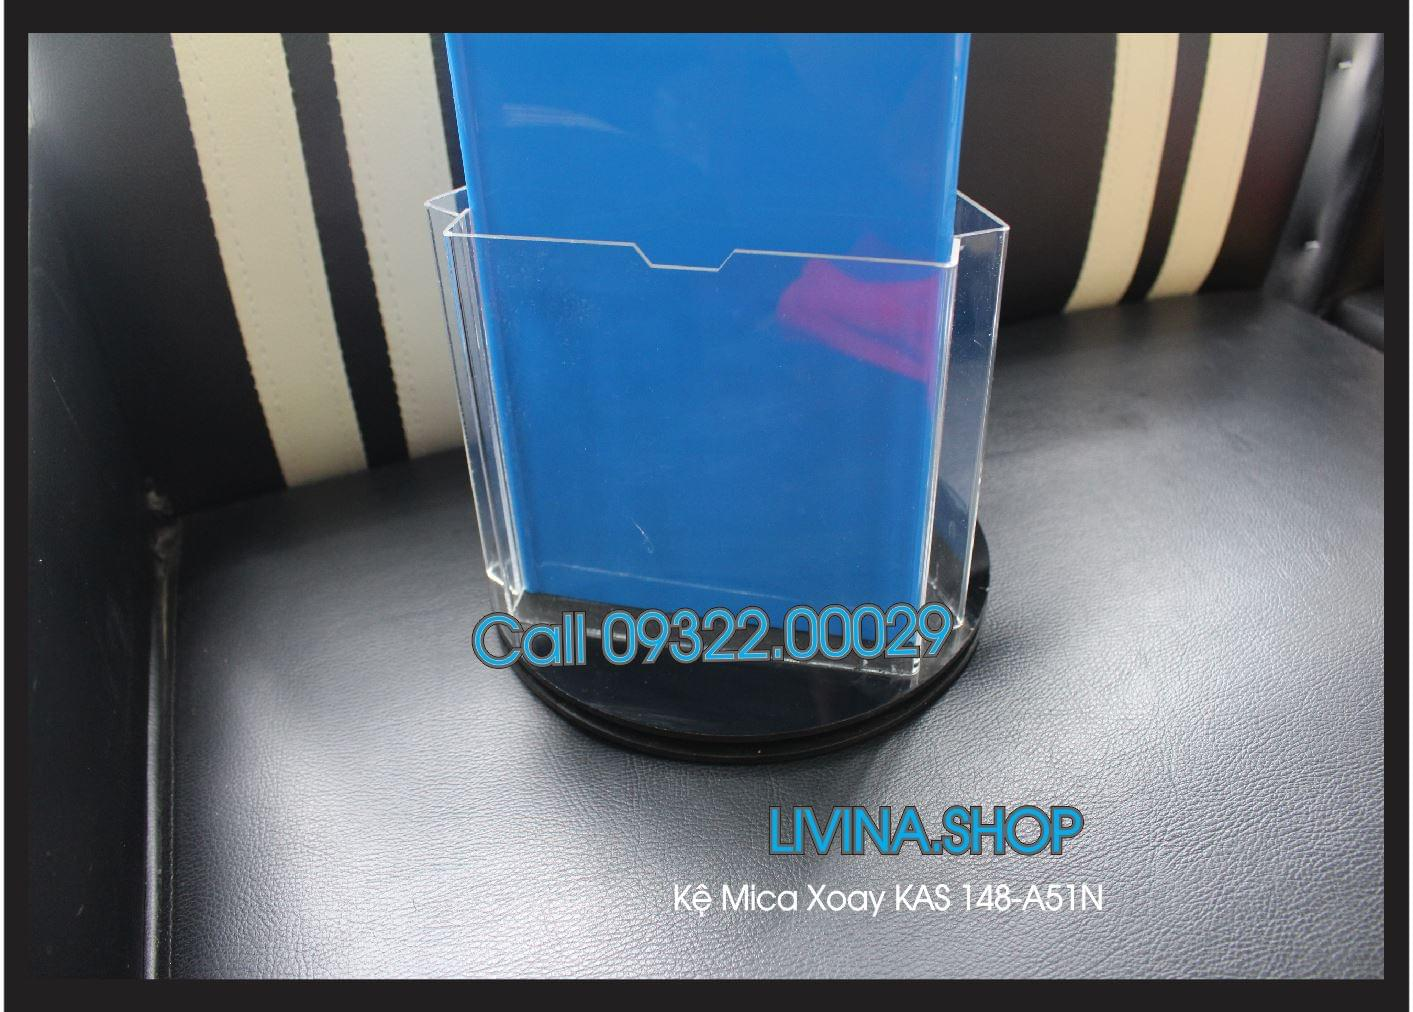 Kệ Mica Xoay KAS 148-A51N